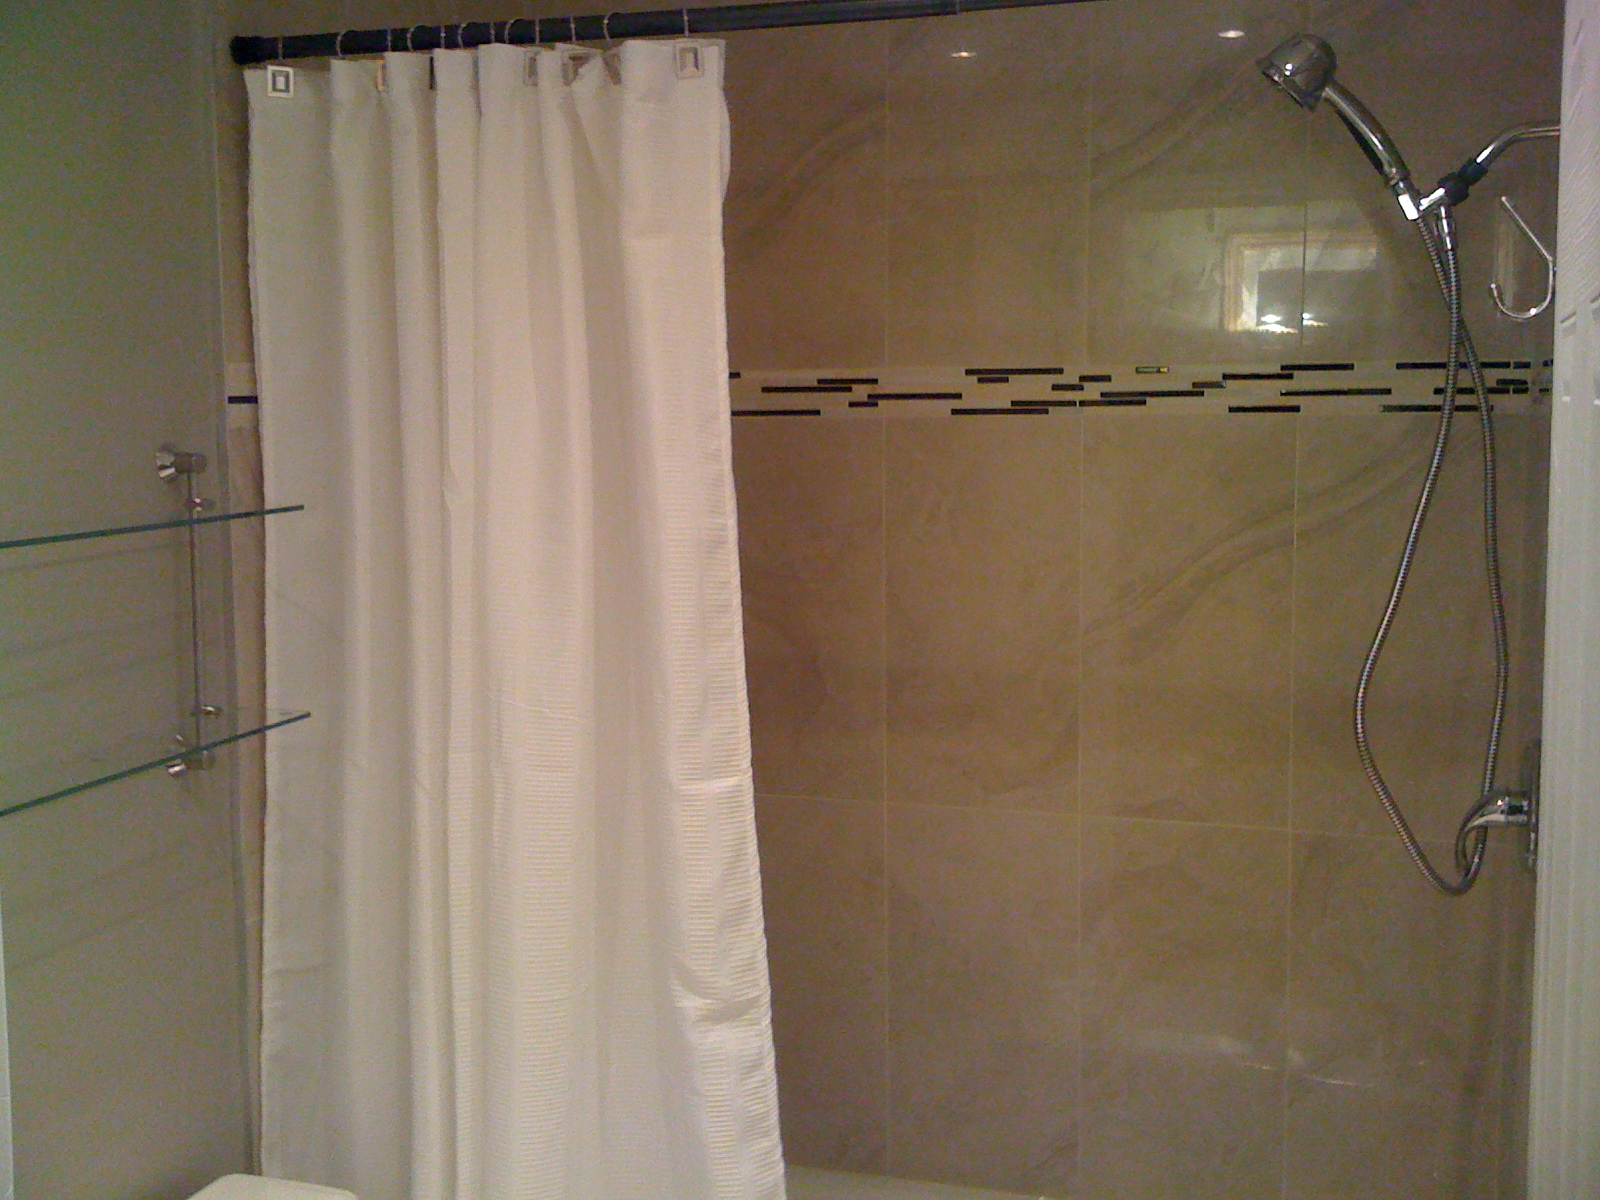 Bathtub Shower tiled with marble